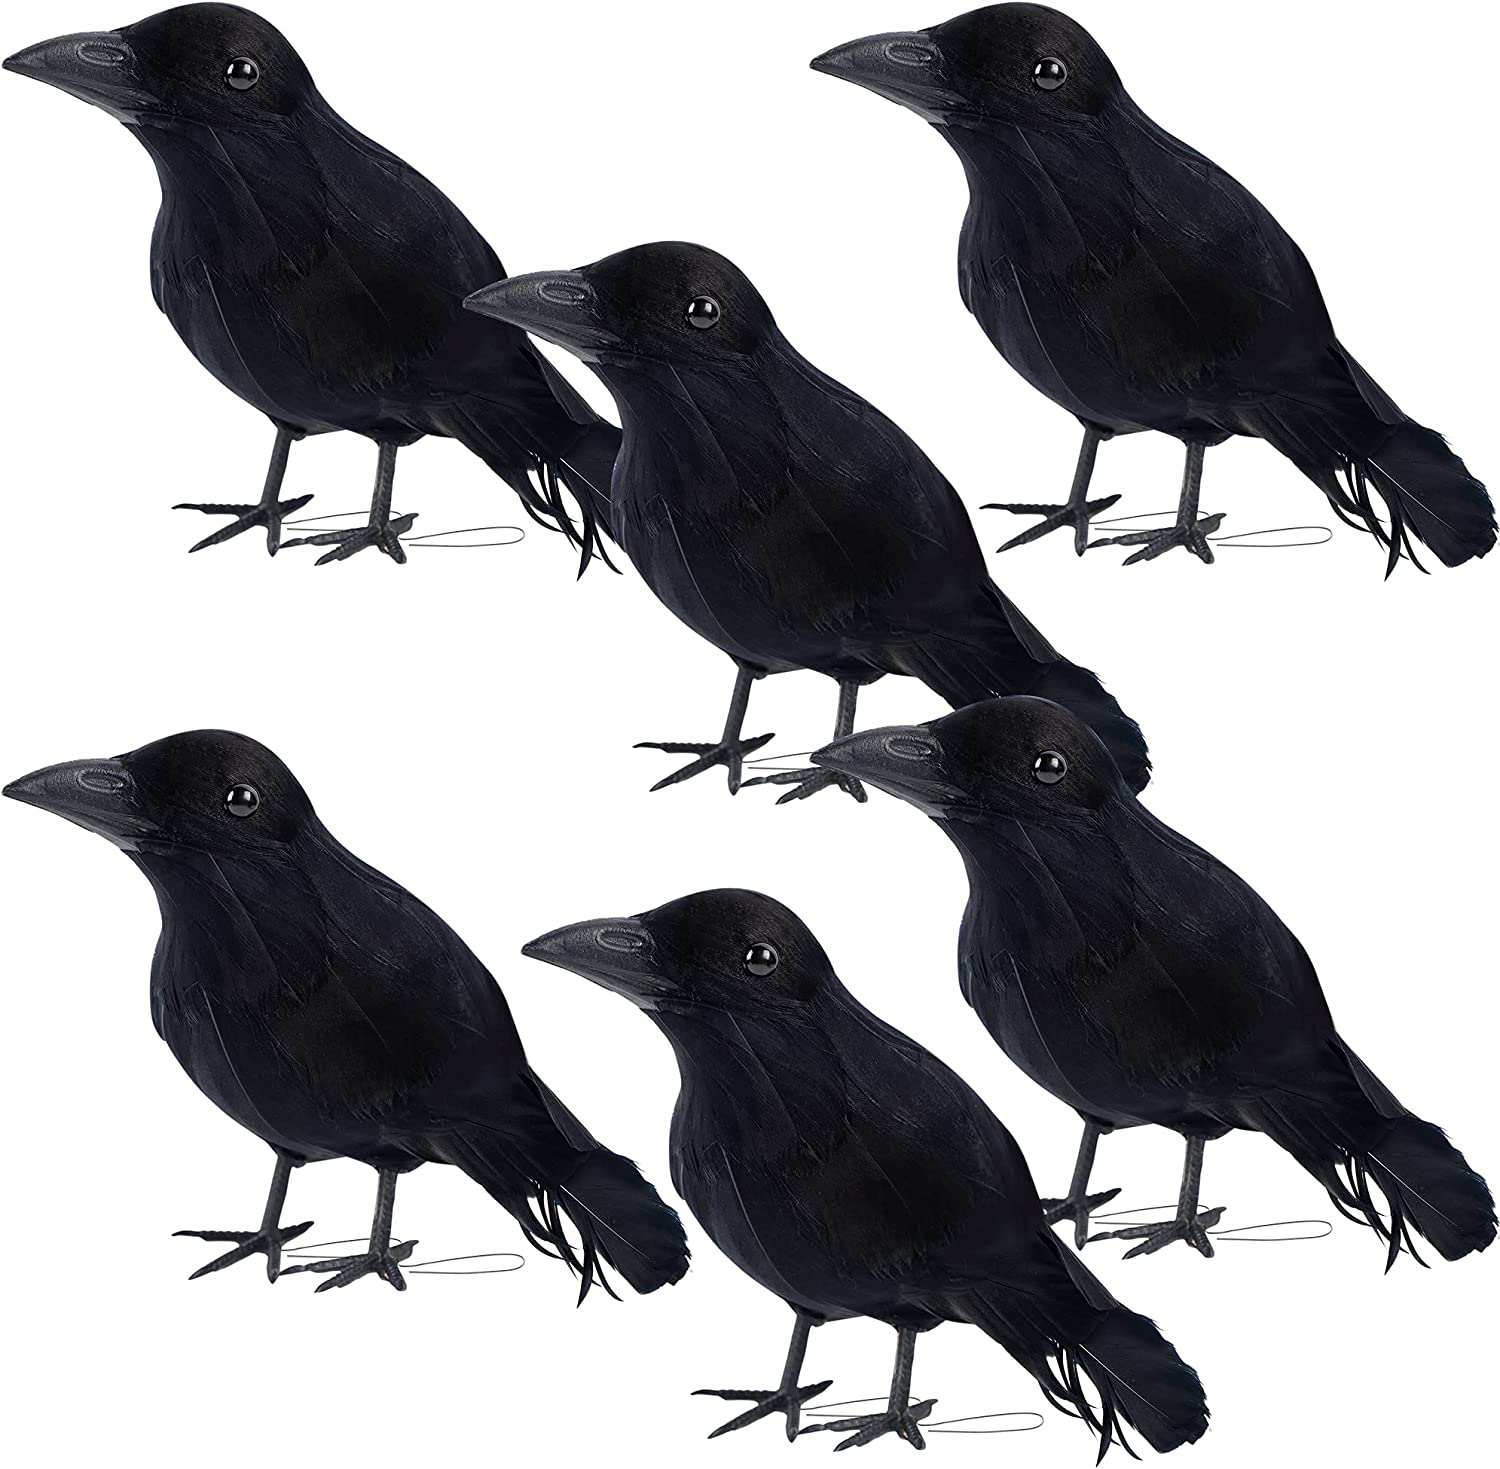 DR.DUDU Outlet sale feature Halloween Crow Decorations 67% OFF of fixed price 6 Lifesize Handmade Art Pack